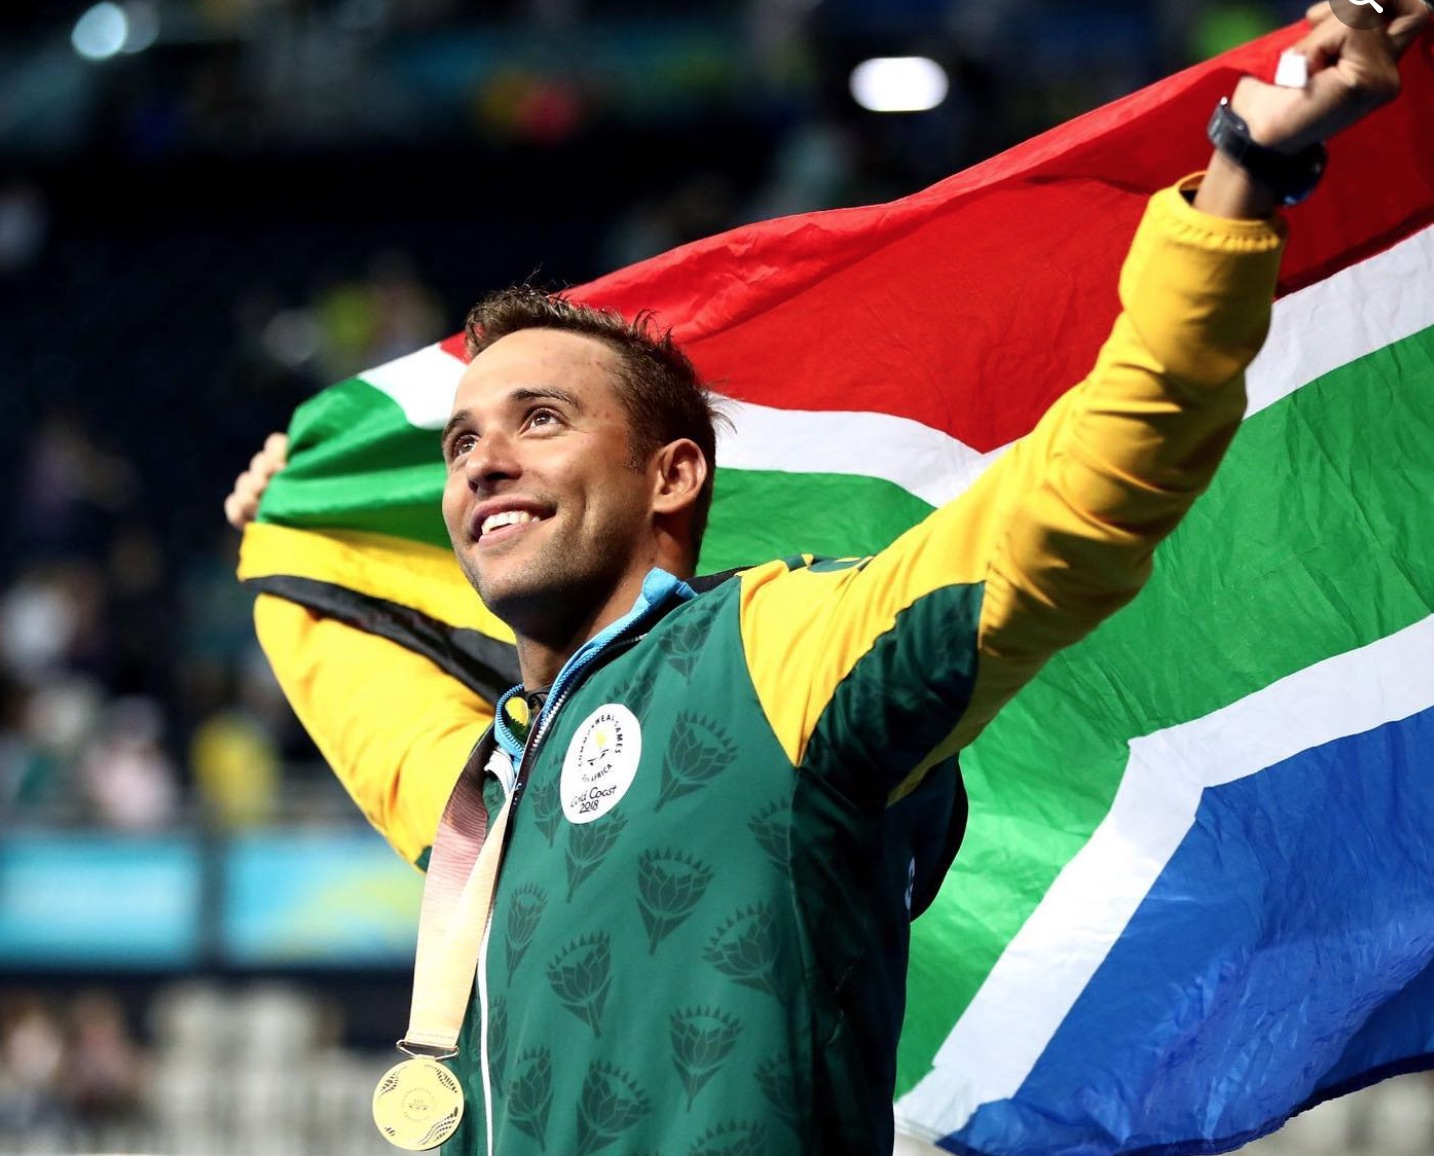 Le Clos, Mbande to carry SA flag at opening ceremony